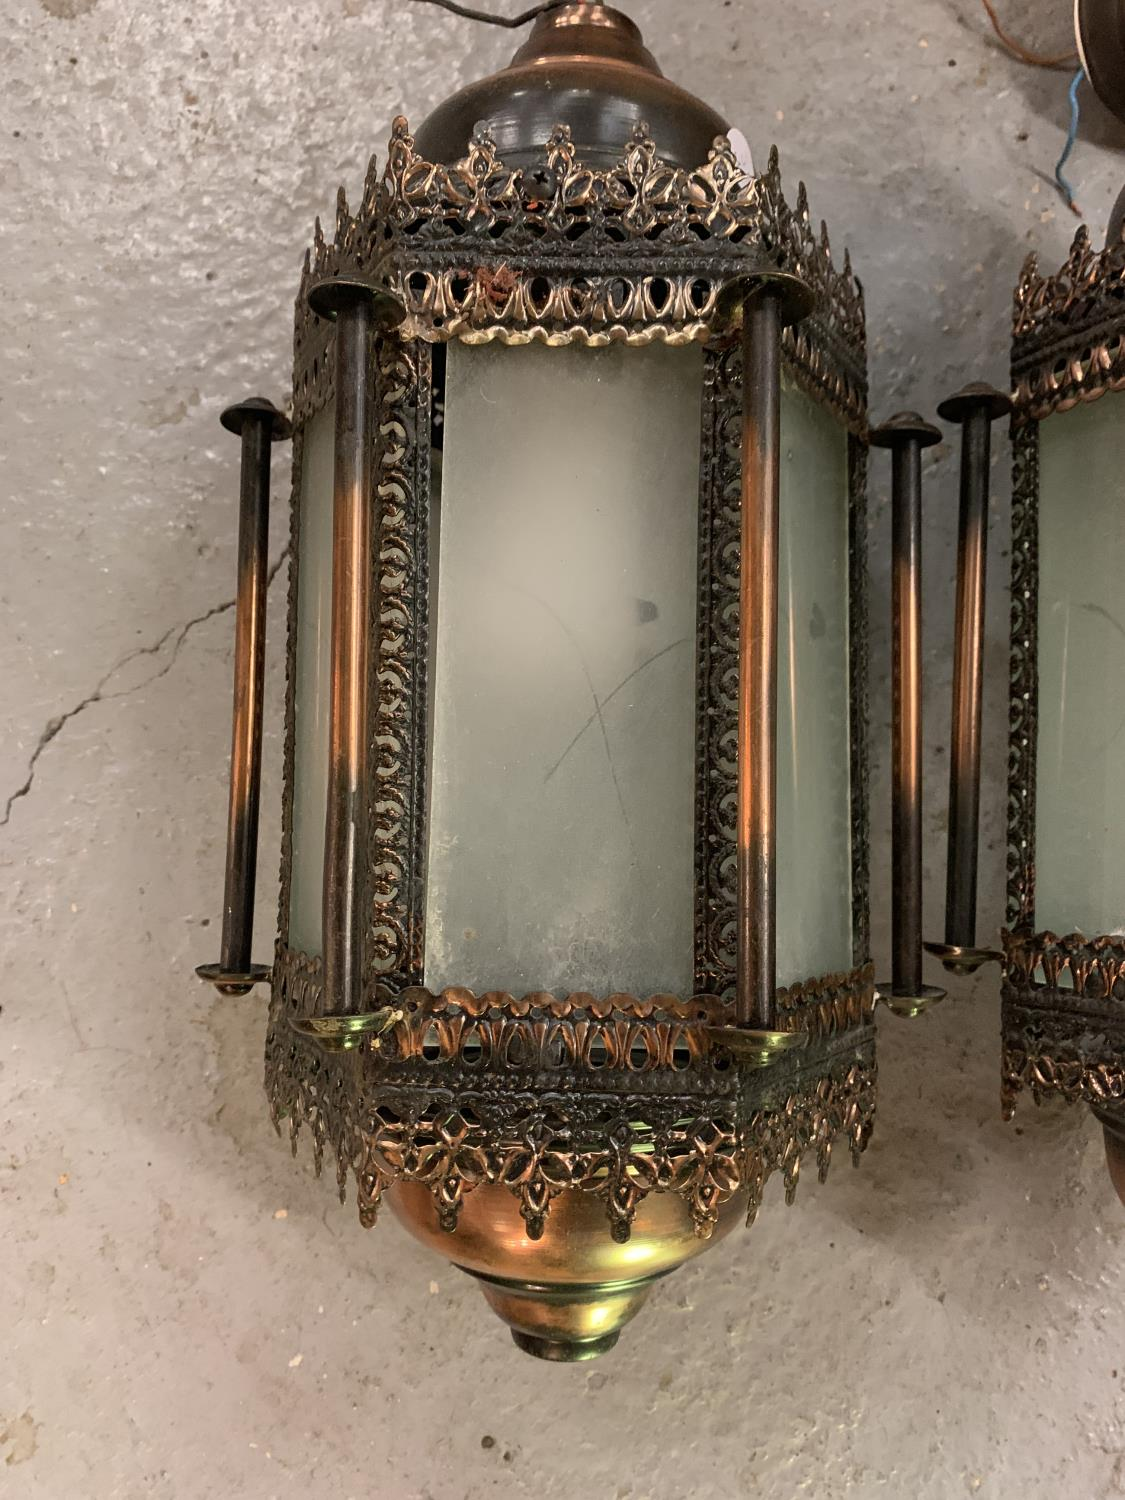 TWO MORROCAN STYLE LIGHTS WITH GLASS PANELS - Image 6 of 6